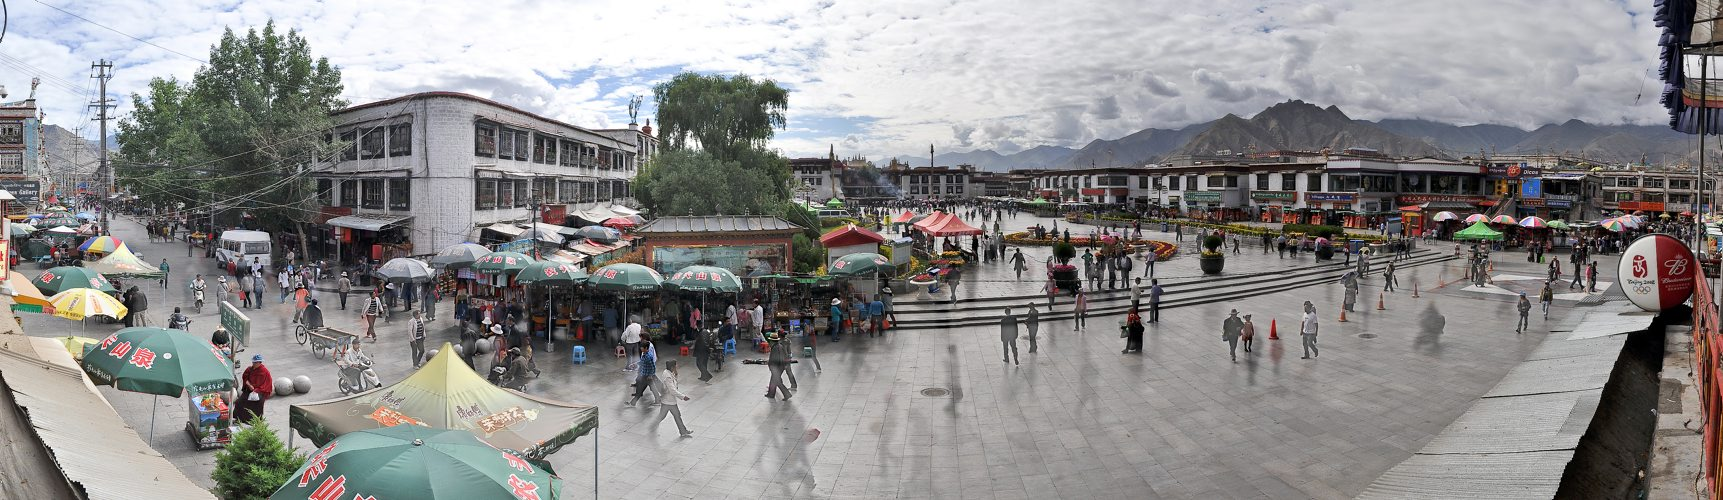 China, Tibet, Lhasa, 3650m, Bharkor Square